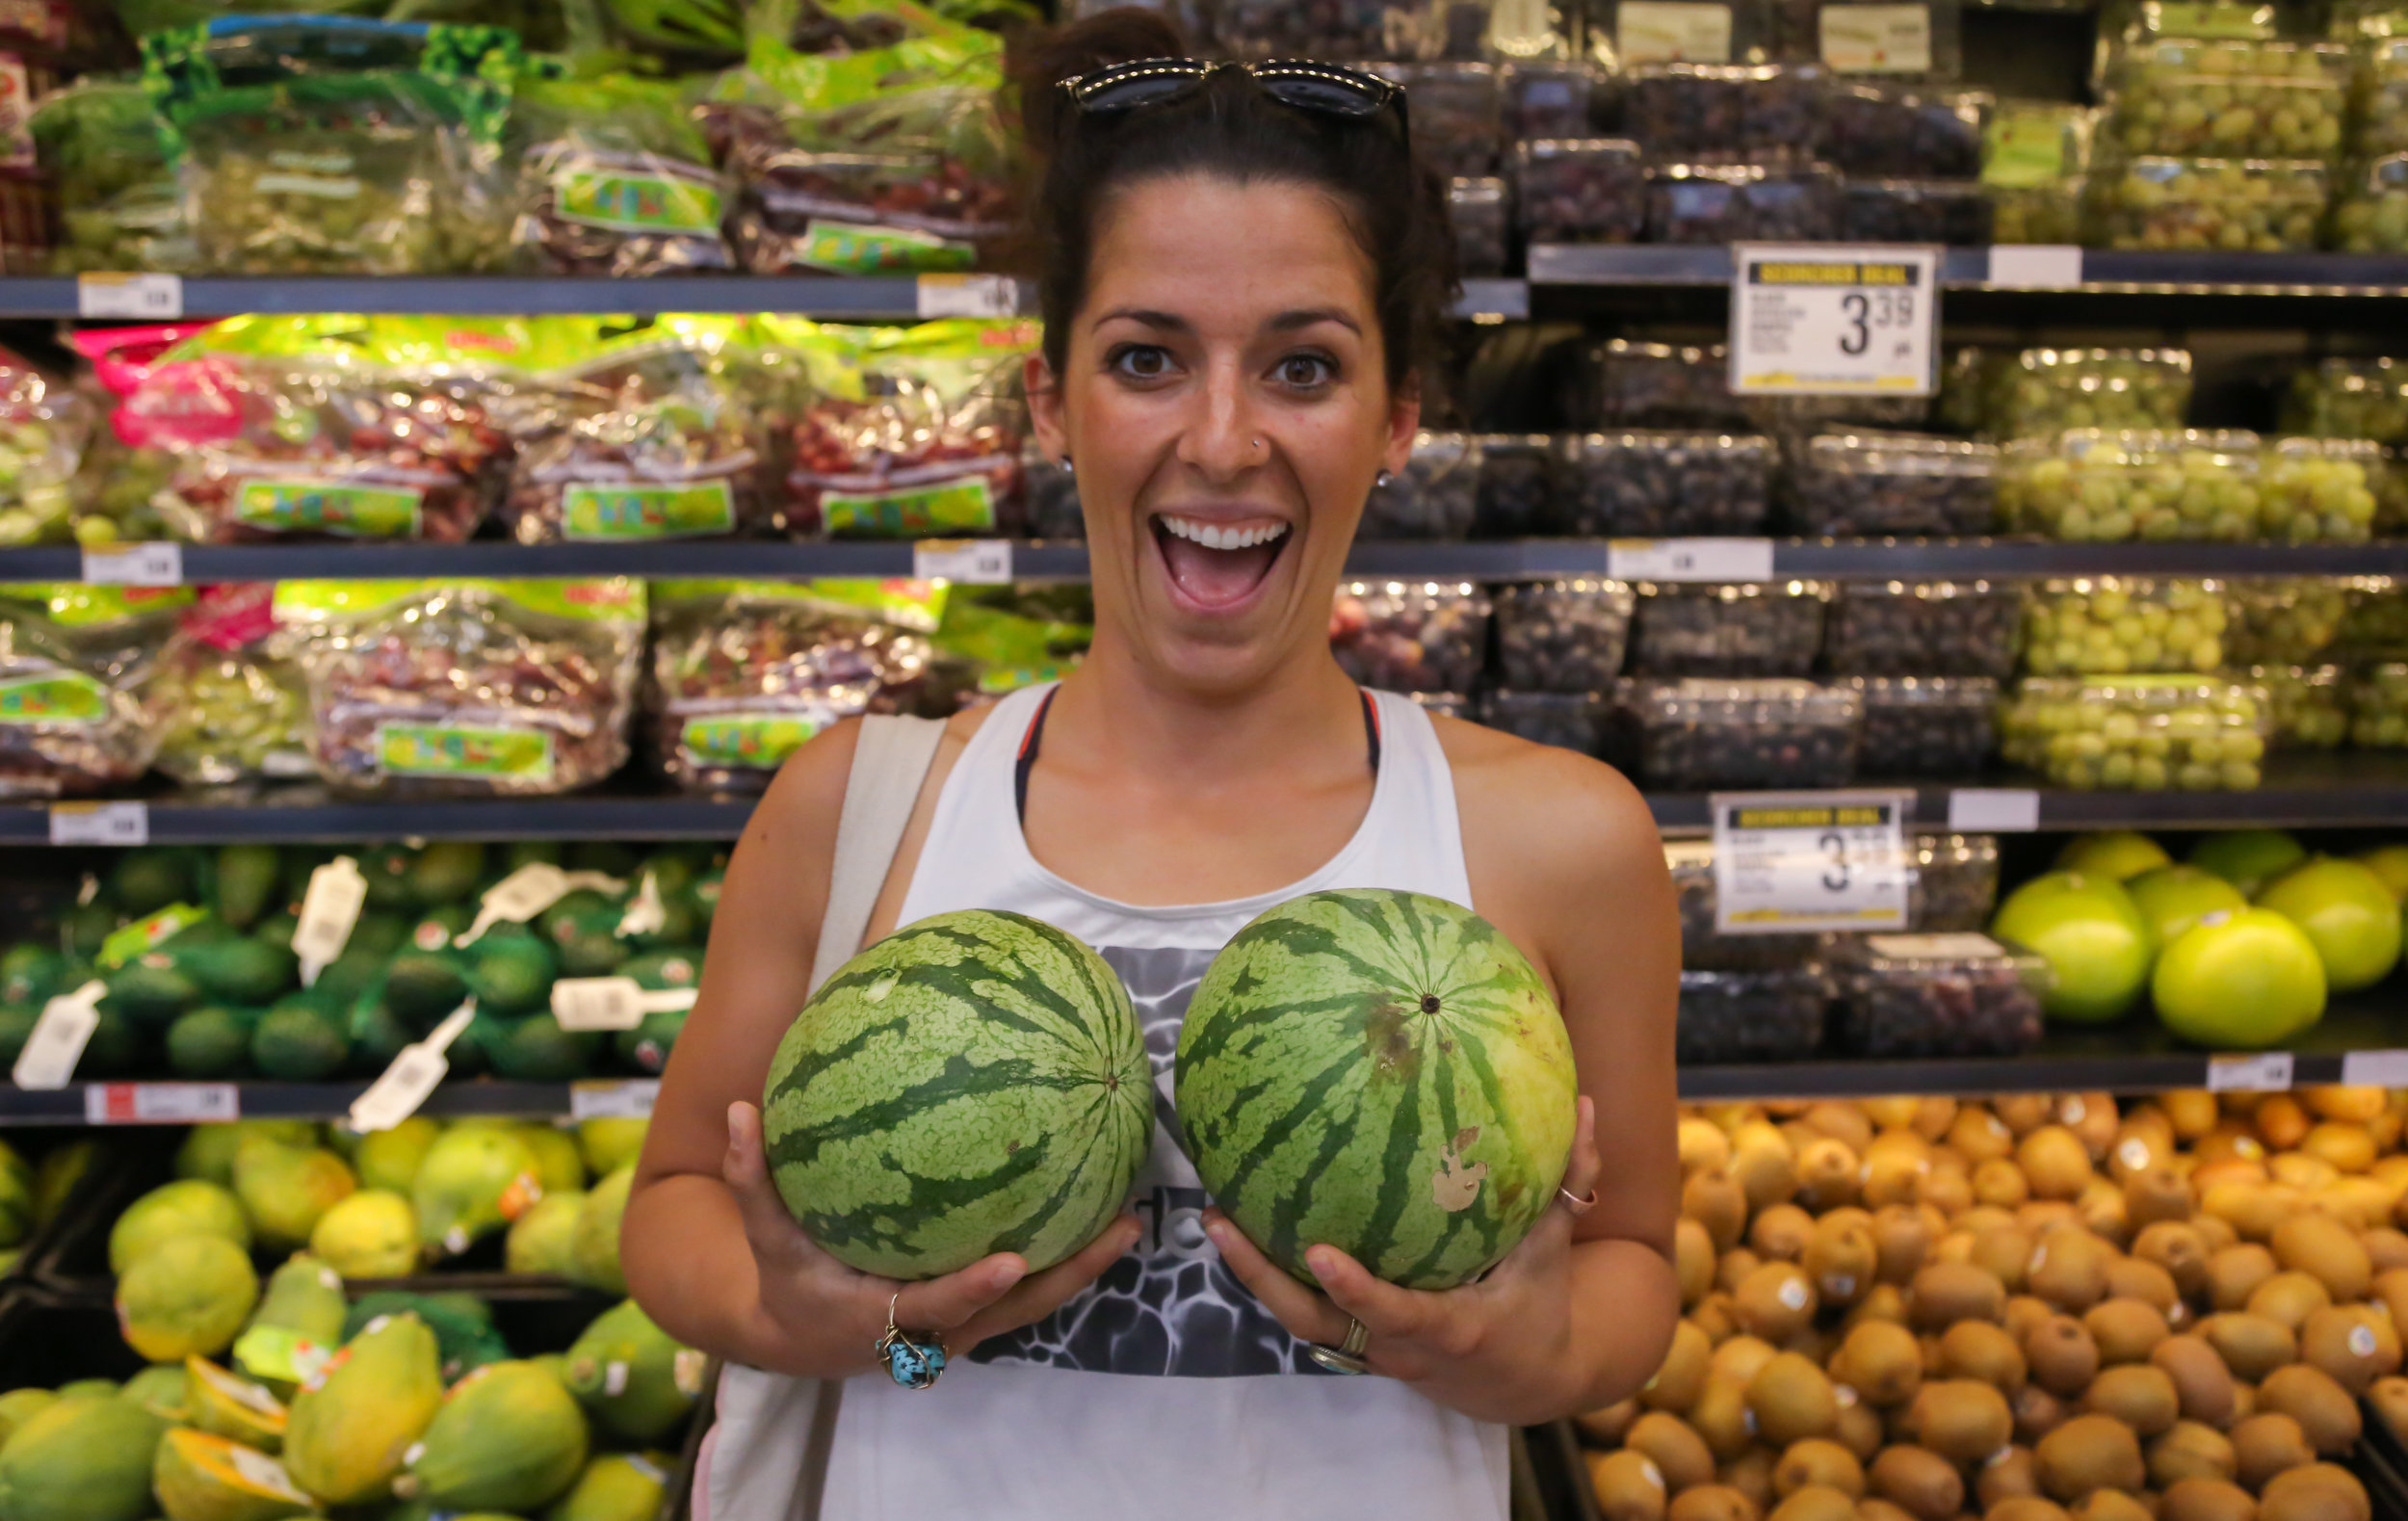 Gotta hold up those melons ;)